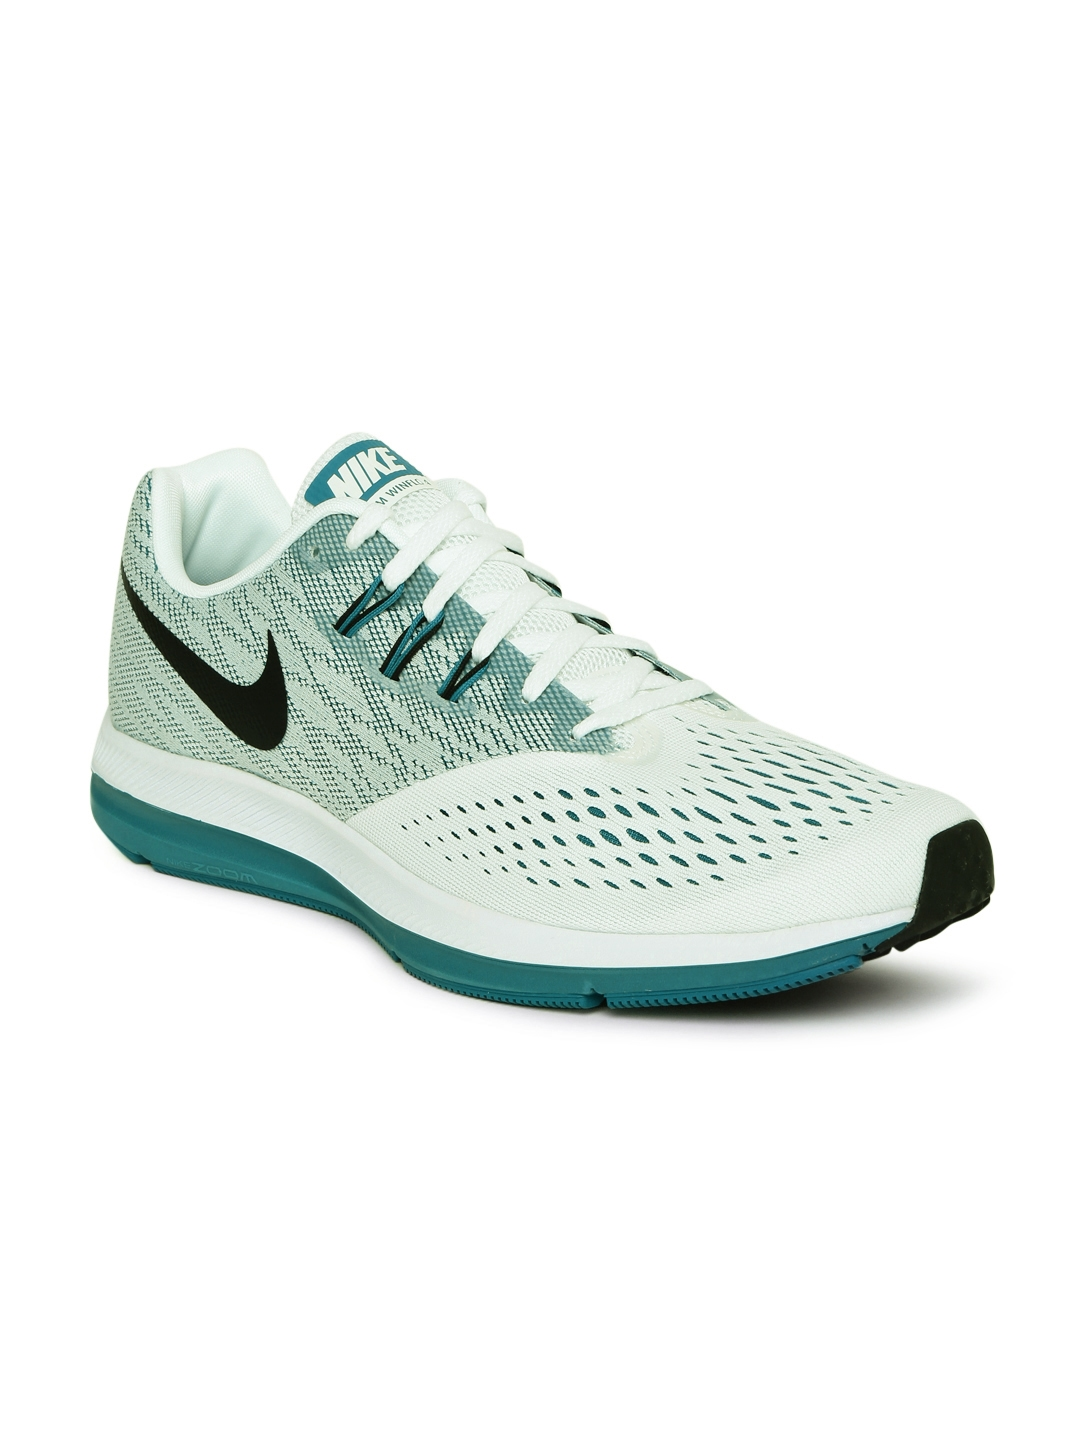 the latest e4d3d 1d3a7 Nike Men White   Teal Blue ZOOM WINFLO 4 Running Shoes